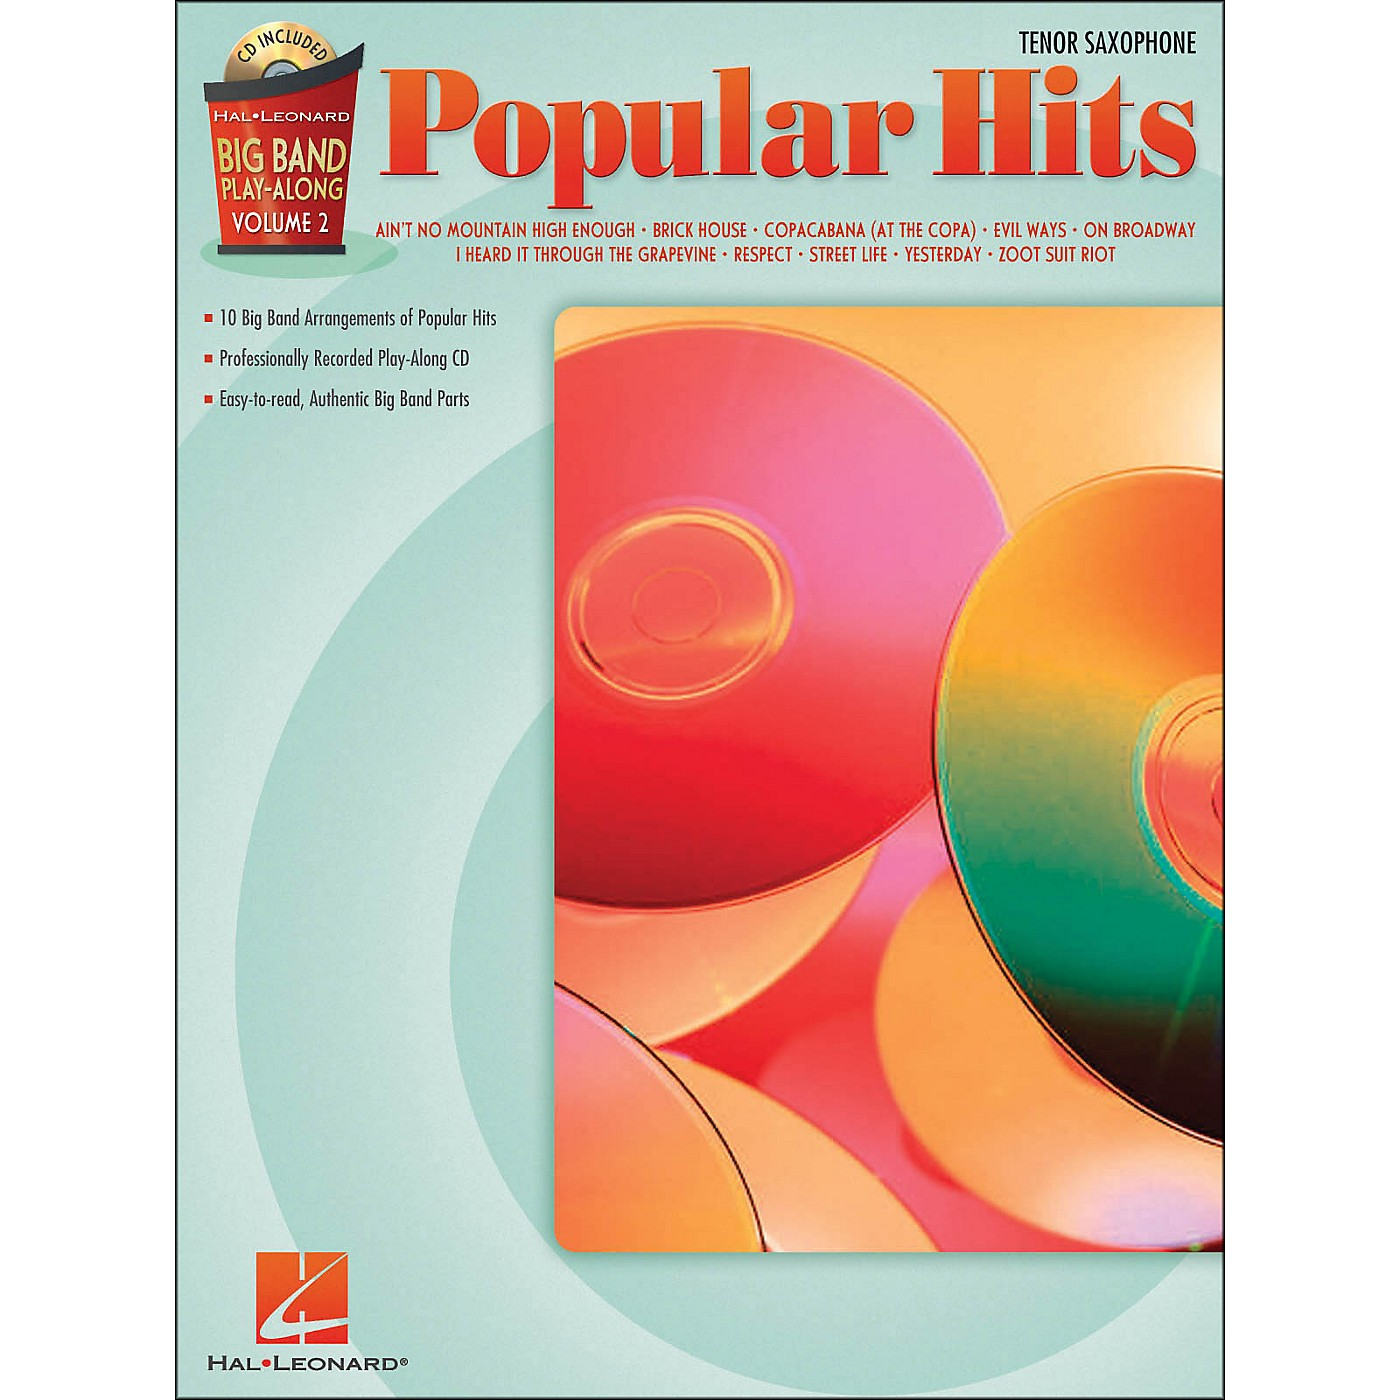 Hal Leonard Popular Hits Big Band Play-Along Volume 2 Tenor Sax thumbnail